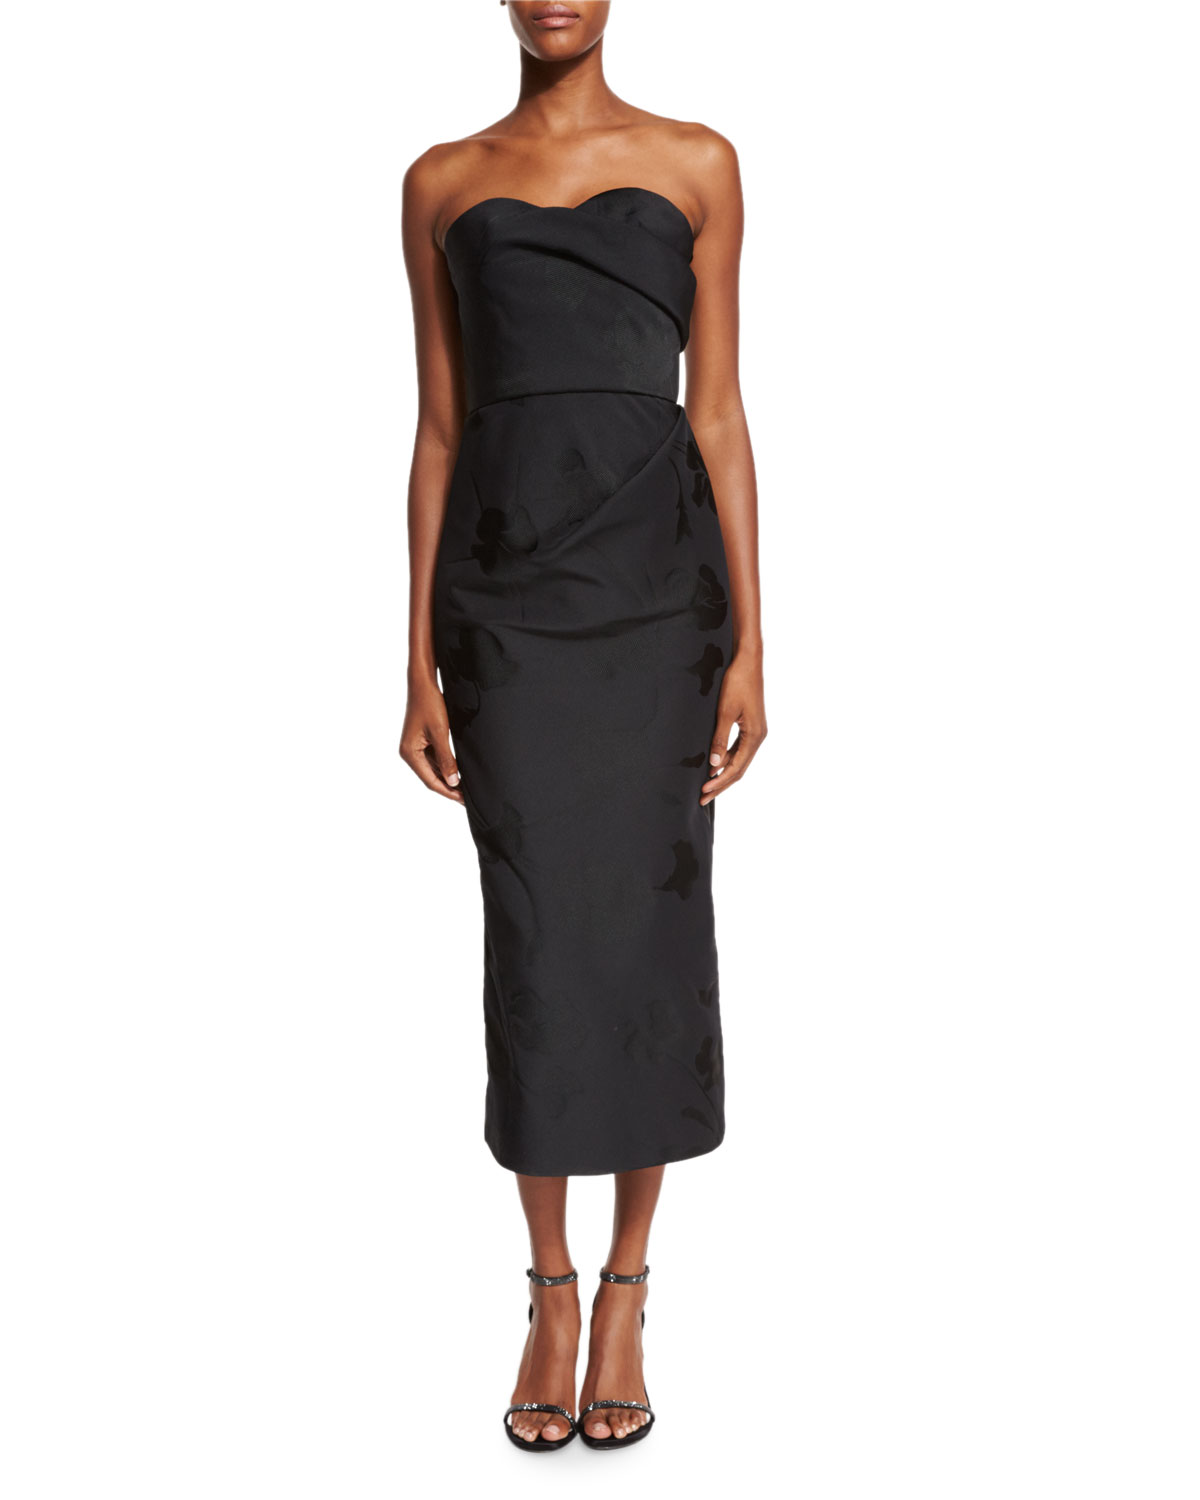 Strapless Draped Cocktail Dress, Black